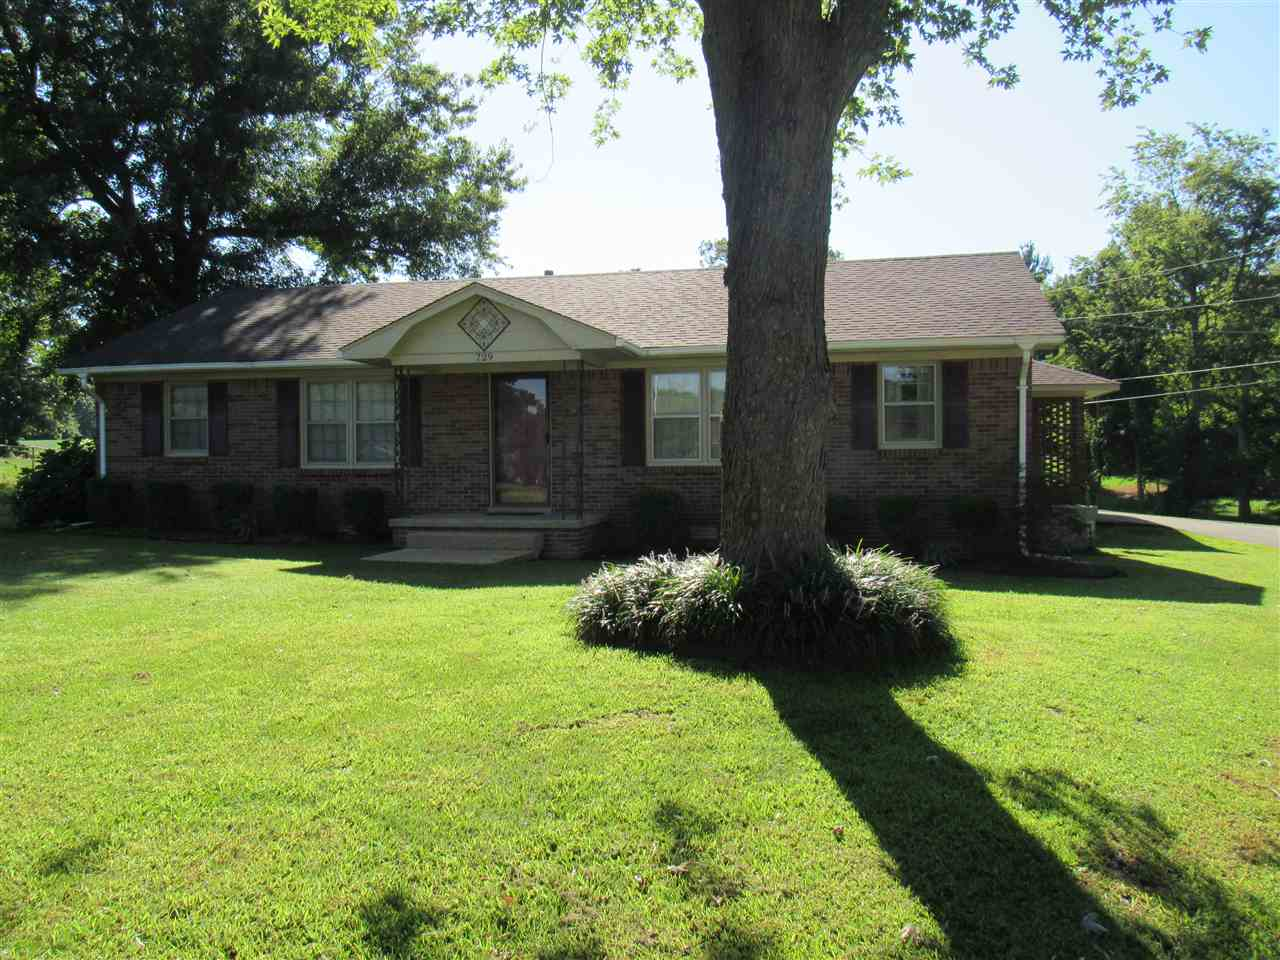 729 Scenic Hills Dr, Newbern, Tennessee 38059, 4 Bedrooms Bedrooms, ,2 BathroomsBathrooms,Residential,For Sale,729 Scenic Hills Dr,190045